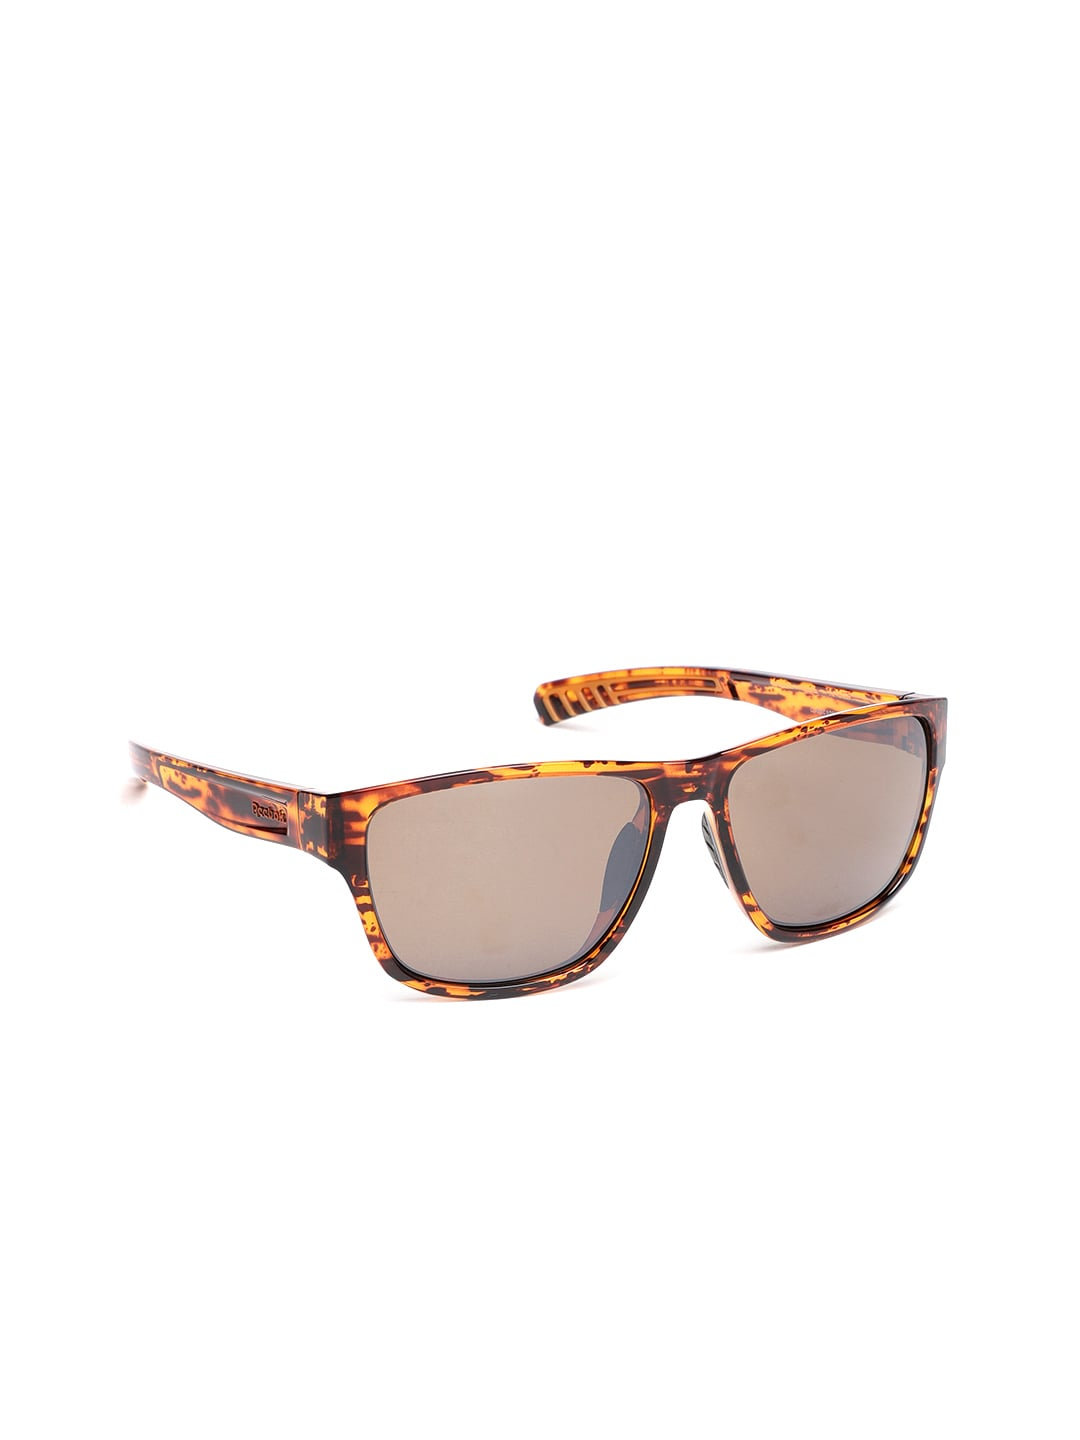 8f4bf471d1a Reebok Sunglasses - Buy Reebok Sunglasses online in India